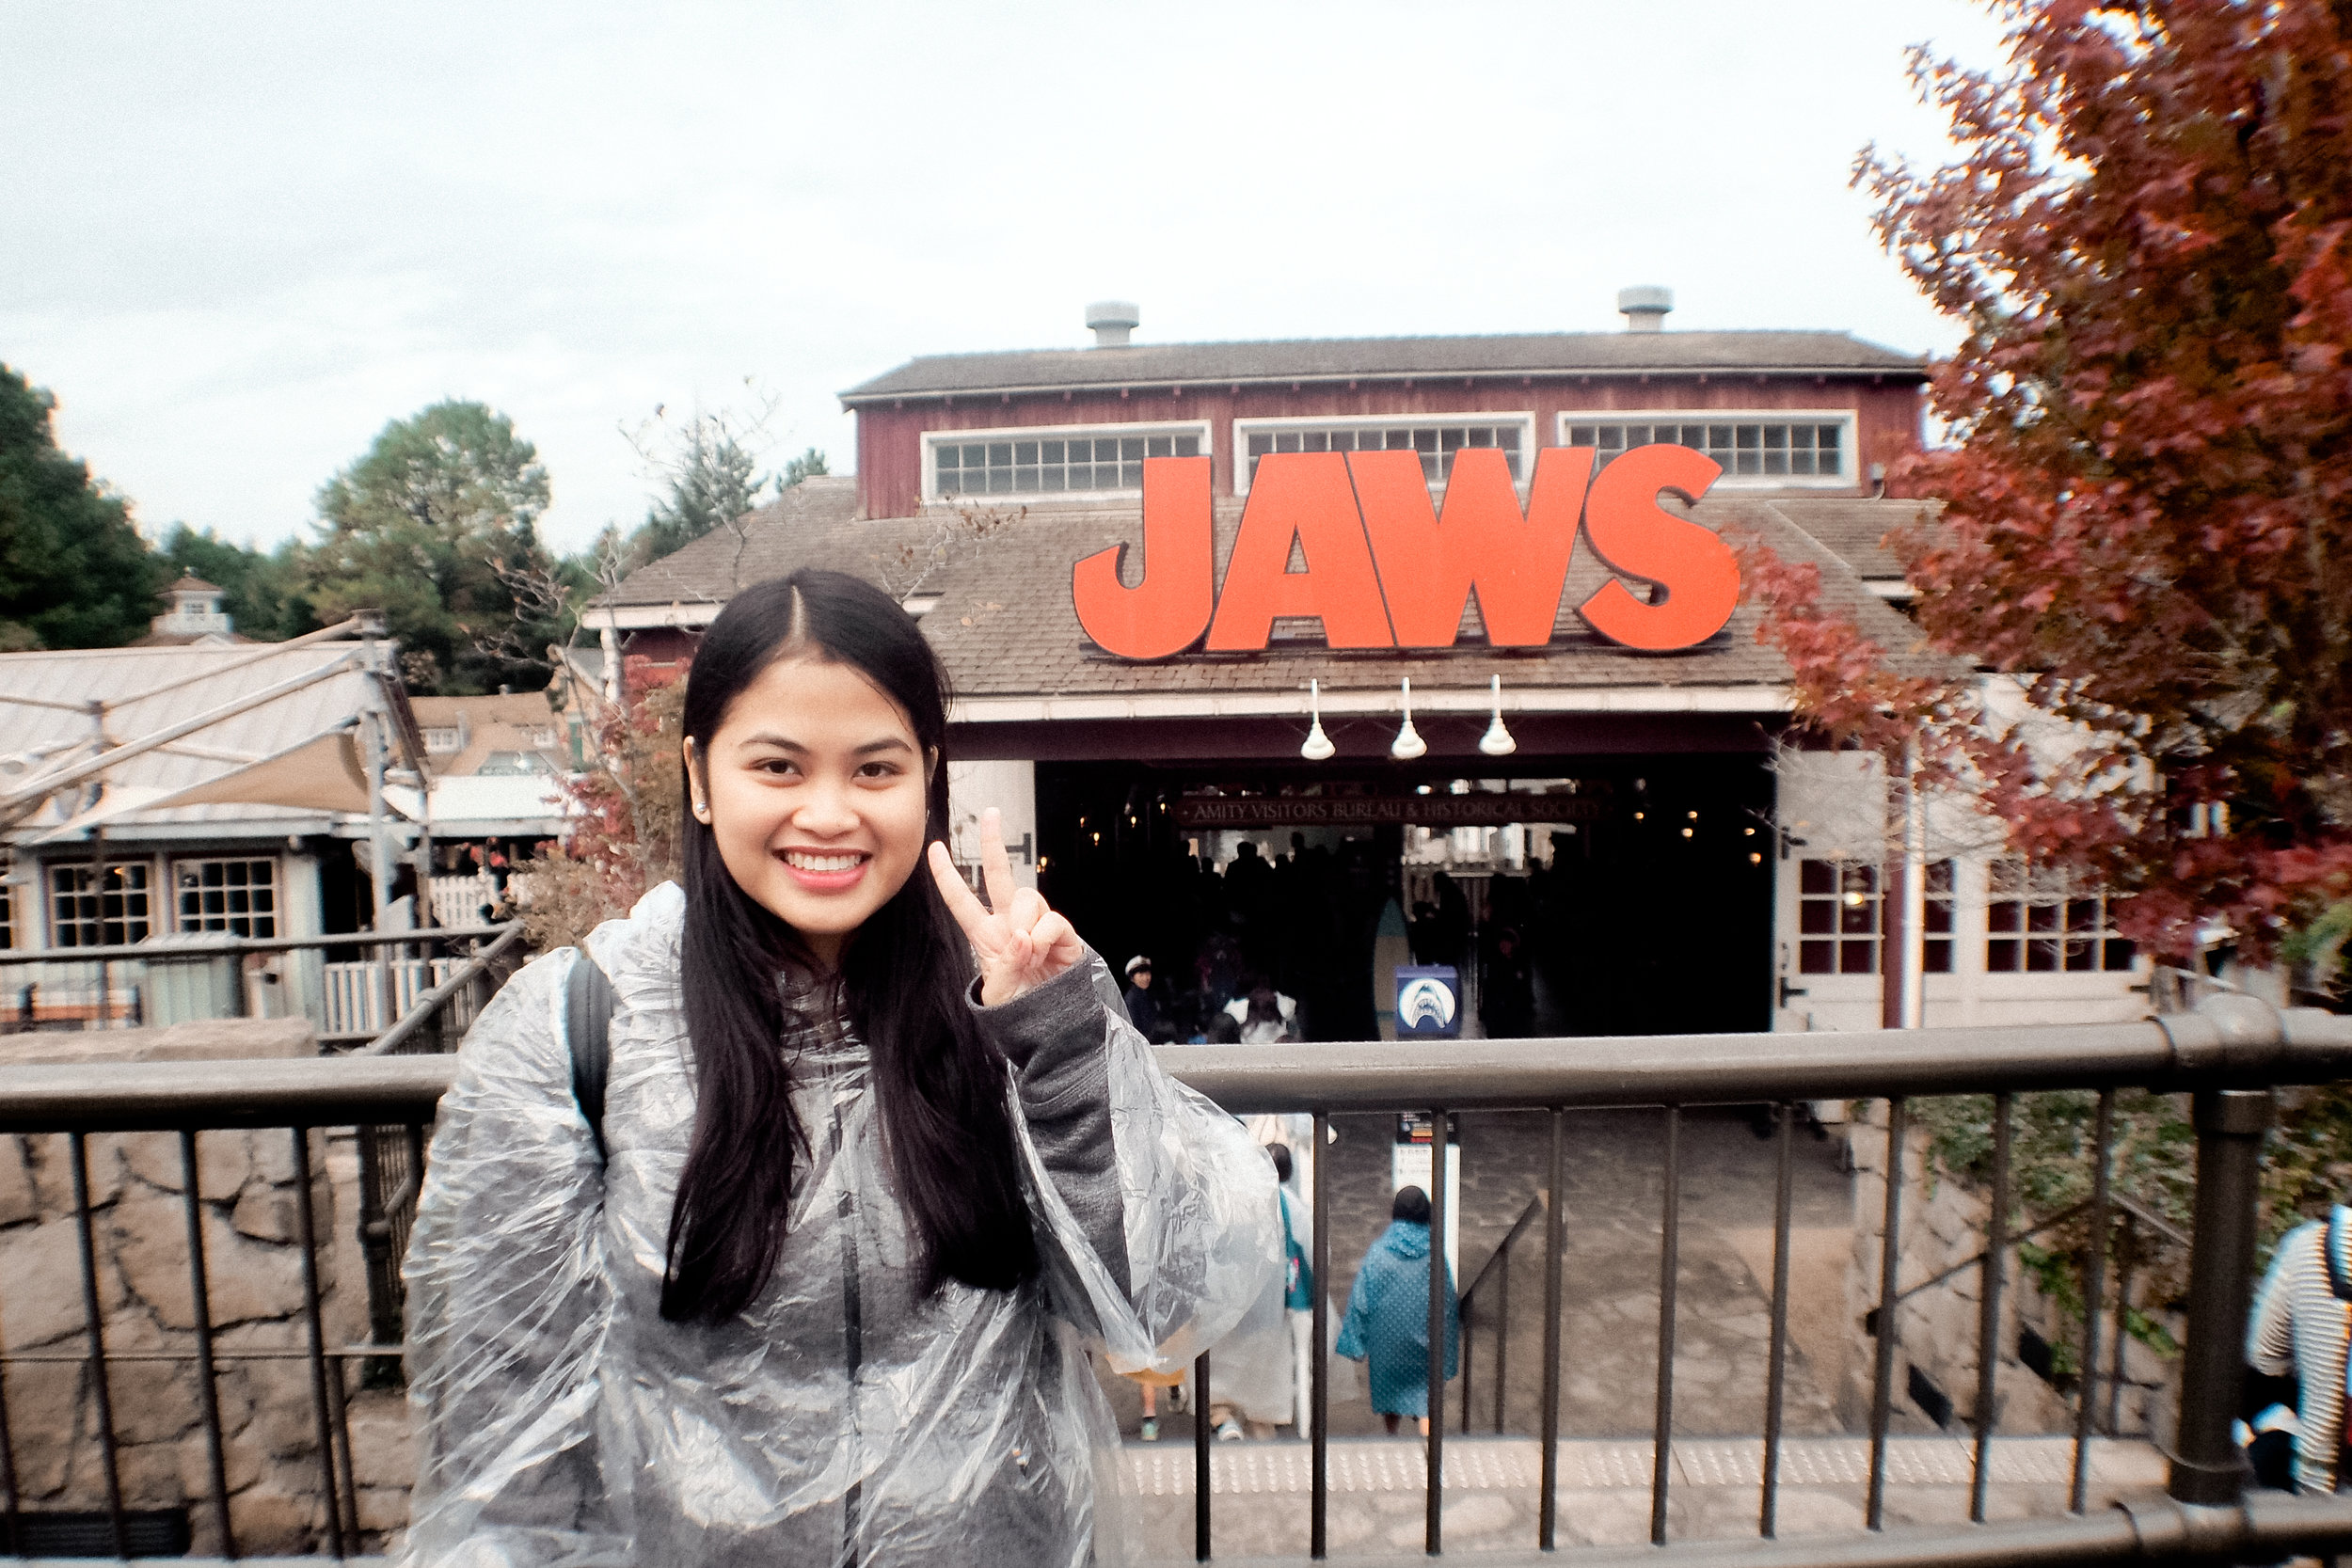 Next ride, Jaws. Courtesy of our express pass again as the queues on other rides are impossible! I am wearing my nifty rain poncho as it started drizzling.